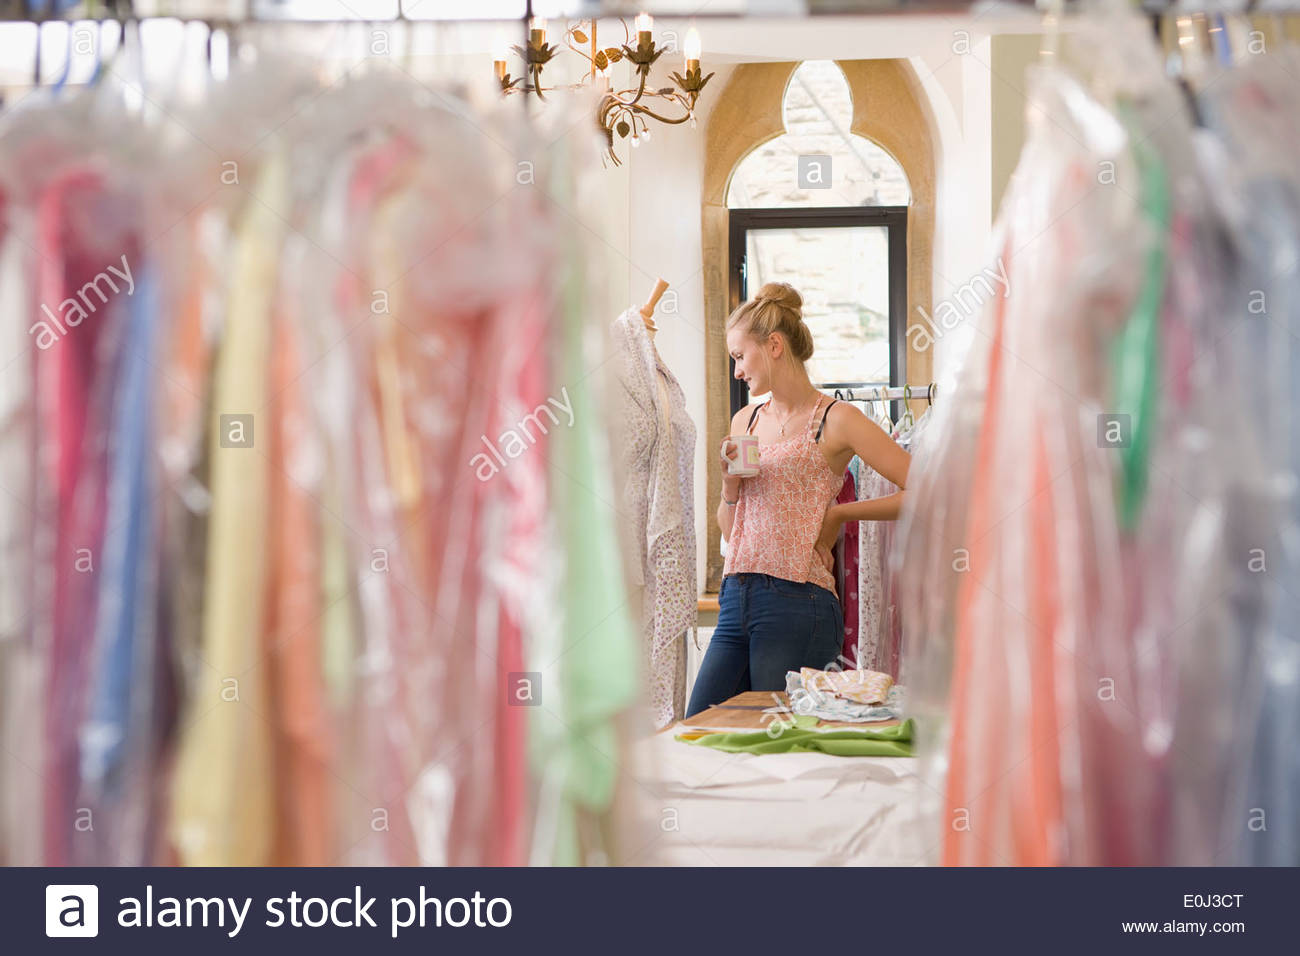 Fashion Designer Relaxing In Design Studio - Stock Image